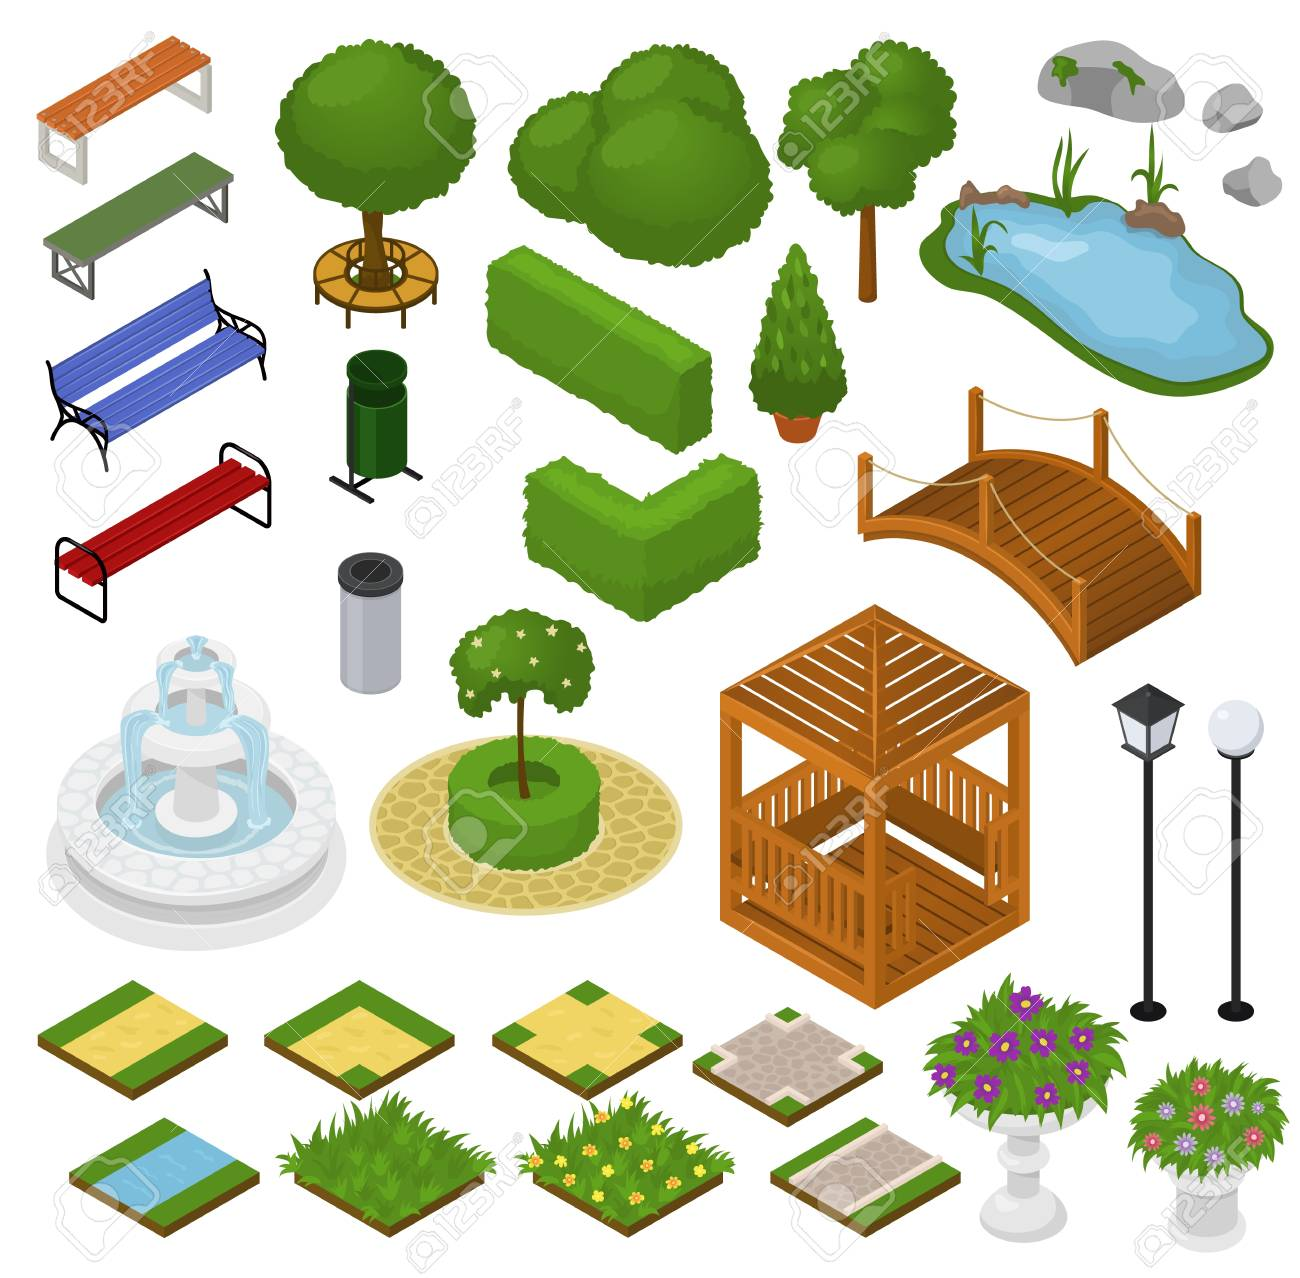 Park vector parkland with green garden trees grass and fountain or pond in city illustration set of isometric parkway in cityscape or landscape isolated on white background. - 109791060